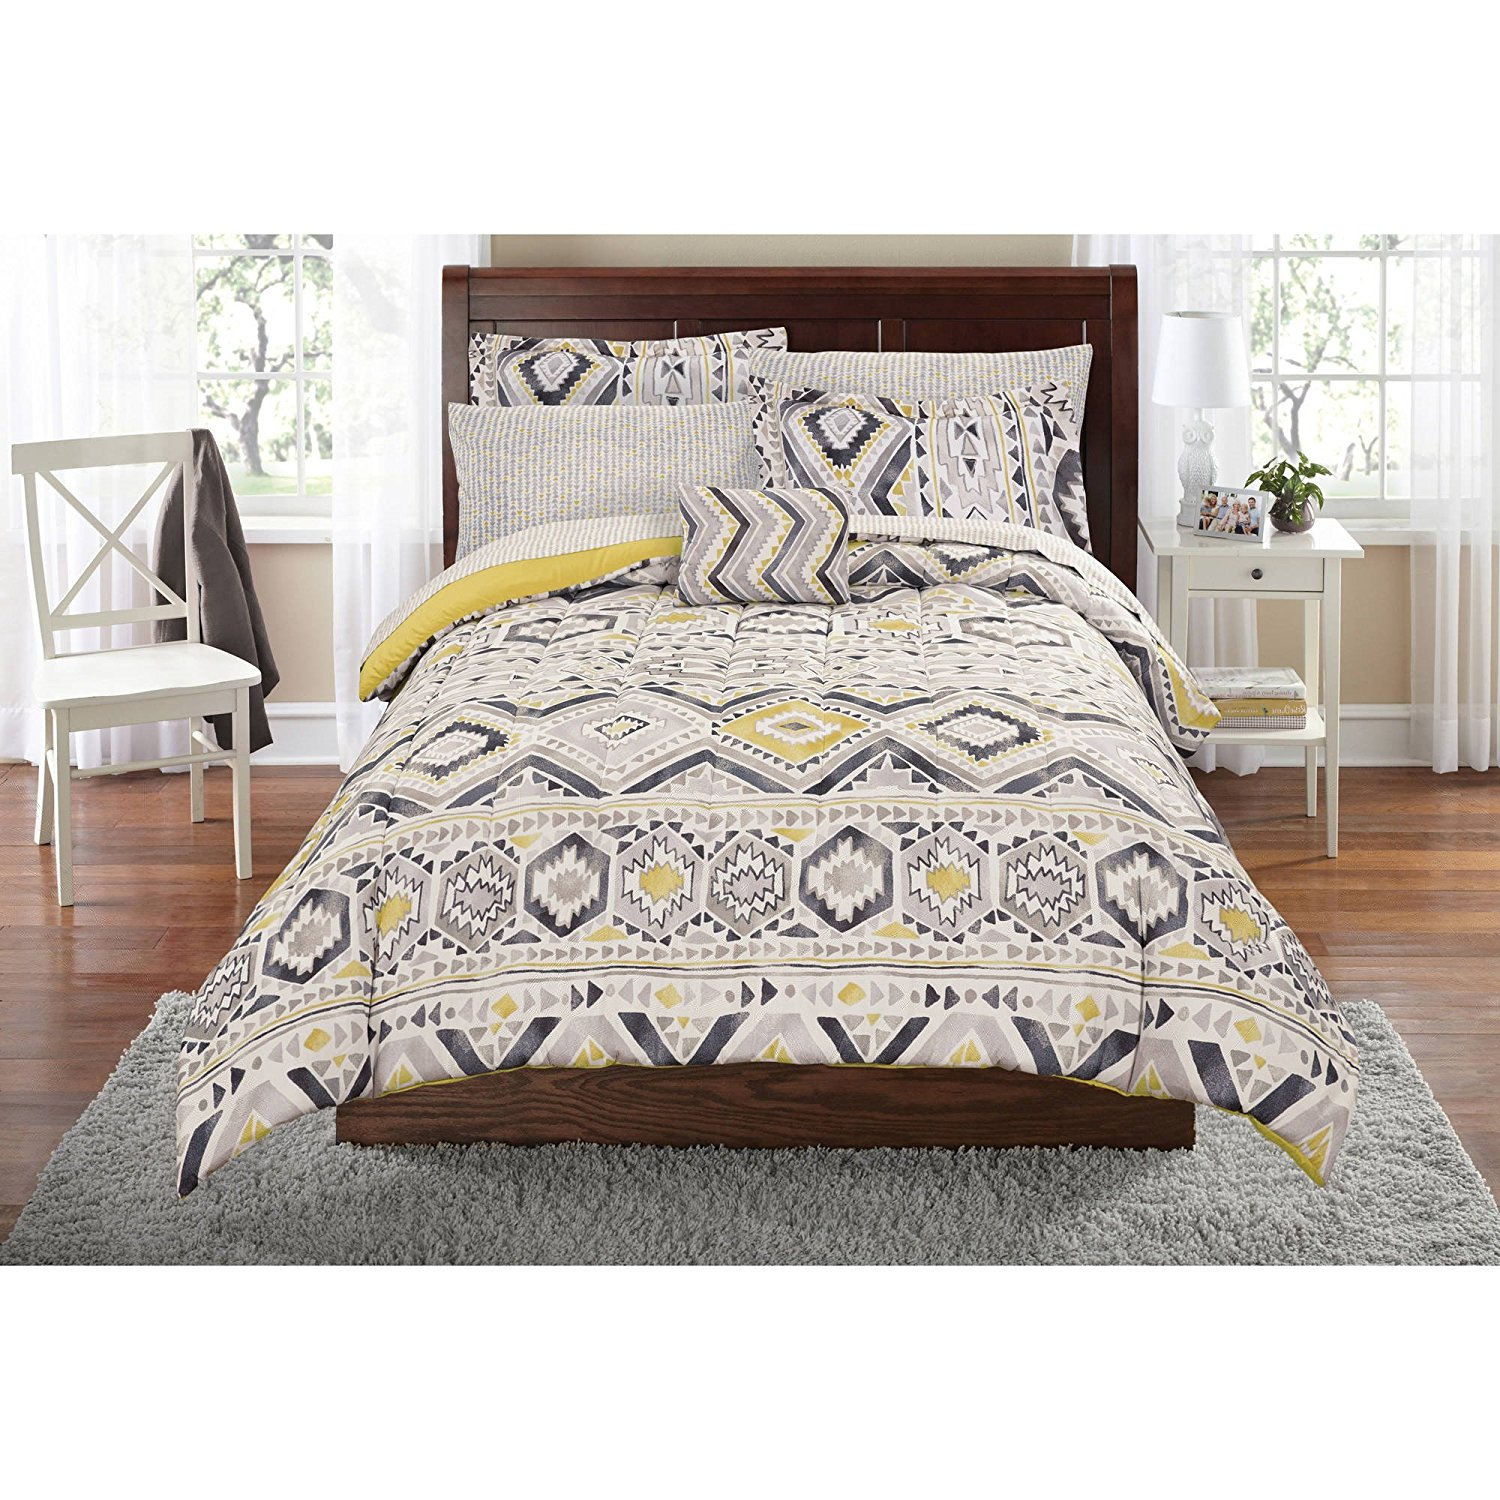 8 Piece Grey Yellow Southwest Comforter Full Set, Aztec Gray Native Tribal Bedding Geometric Chevron Zig Zag Stripes Honeycomb Pattern Southwestern Colors Indian Motif, Polyester